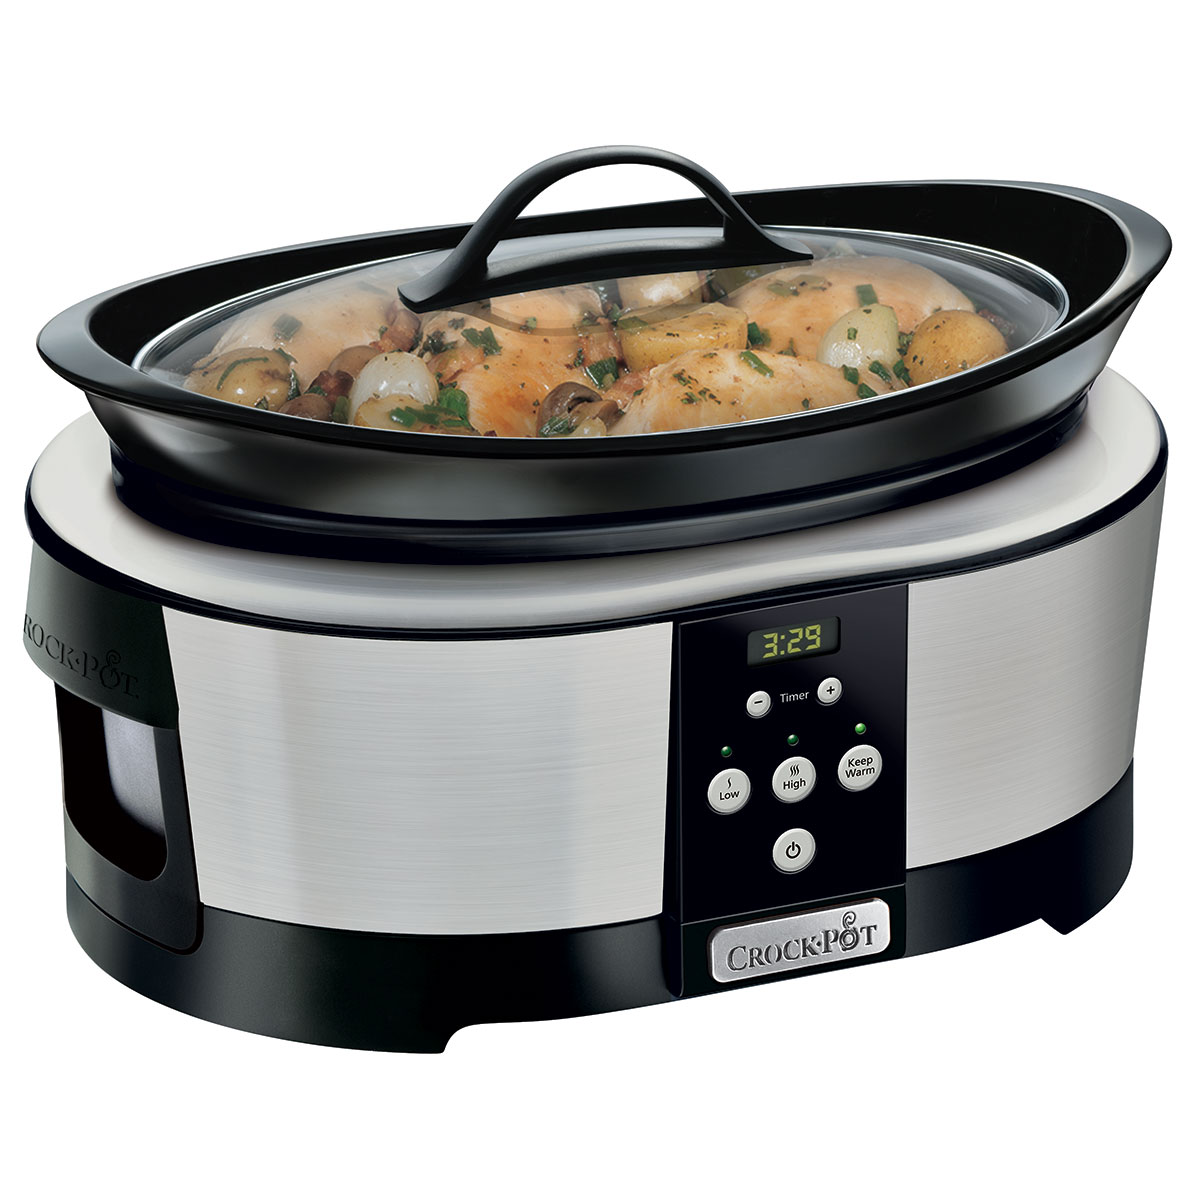 Crockpot slow cooker - 5,7 liter